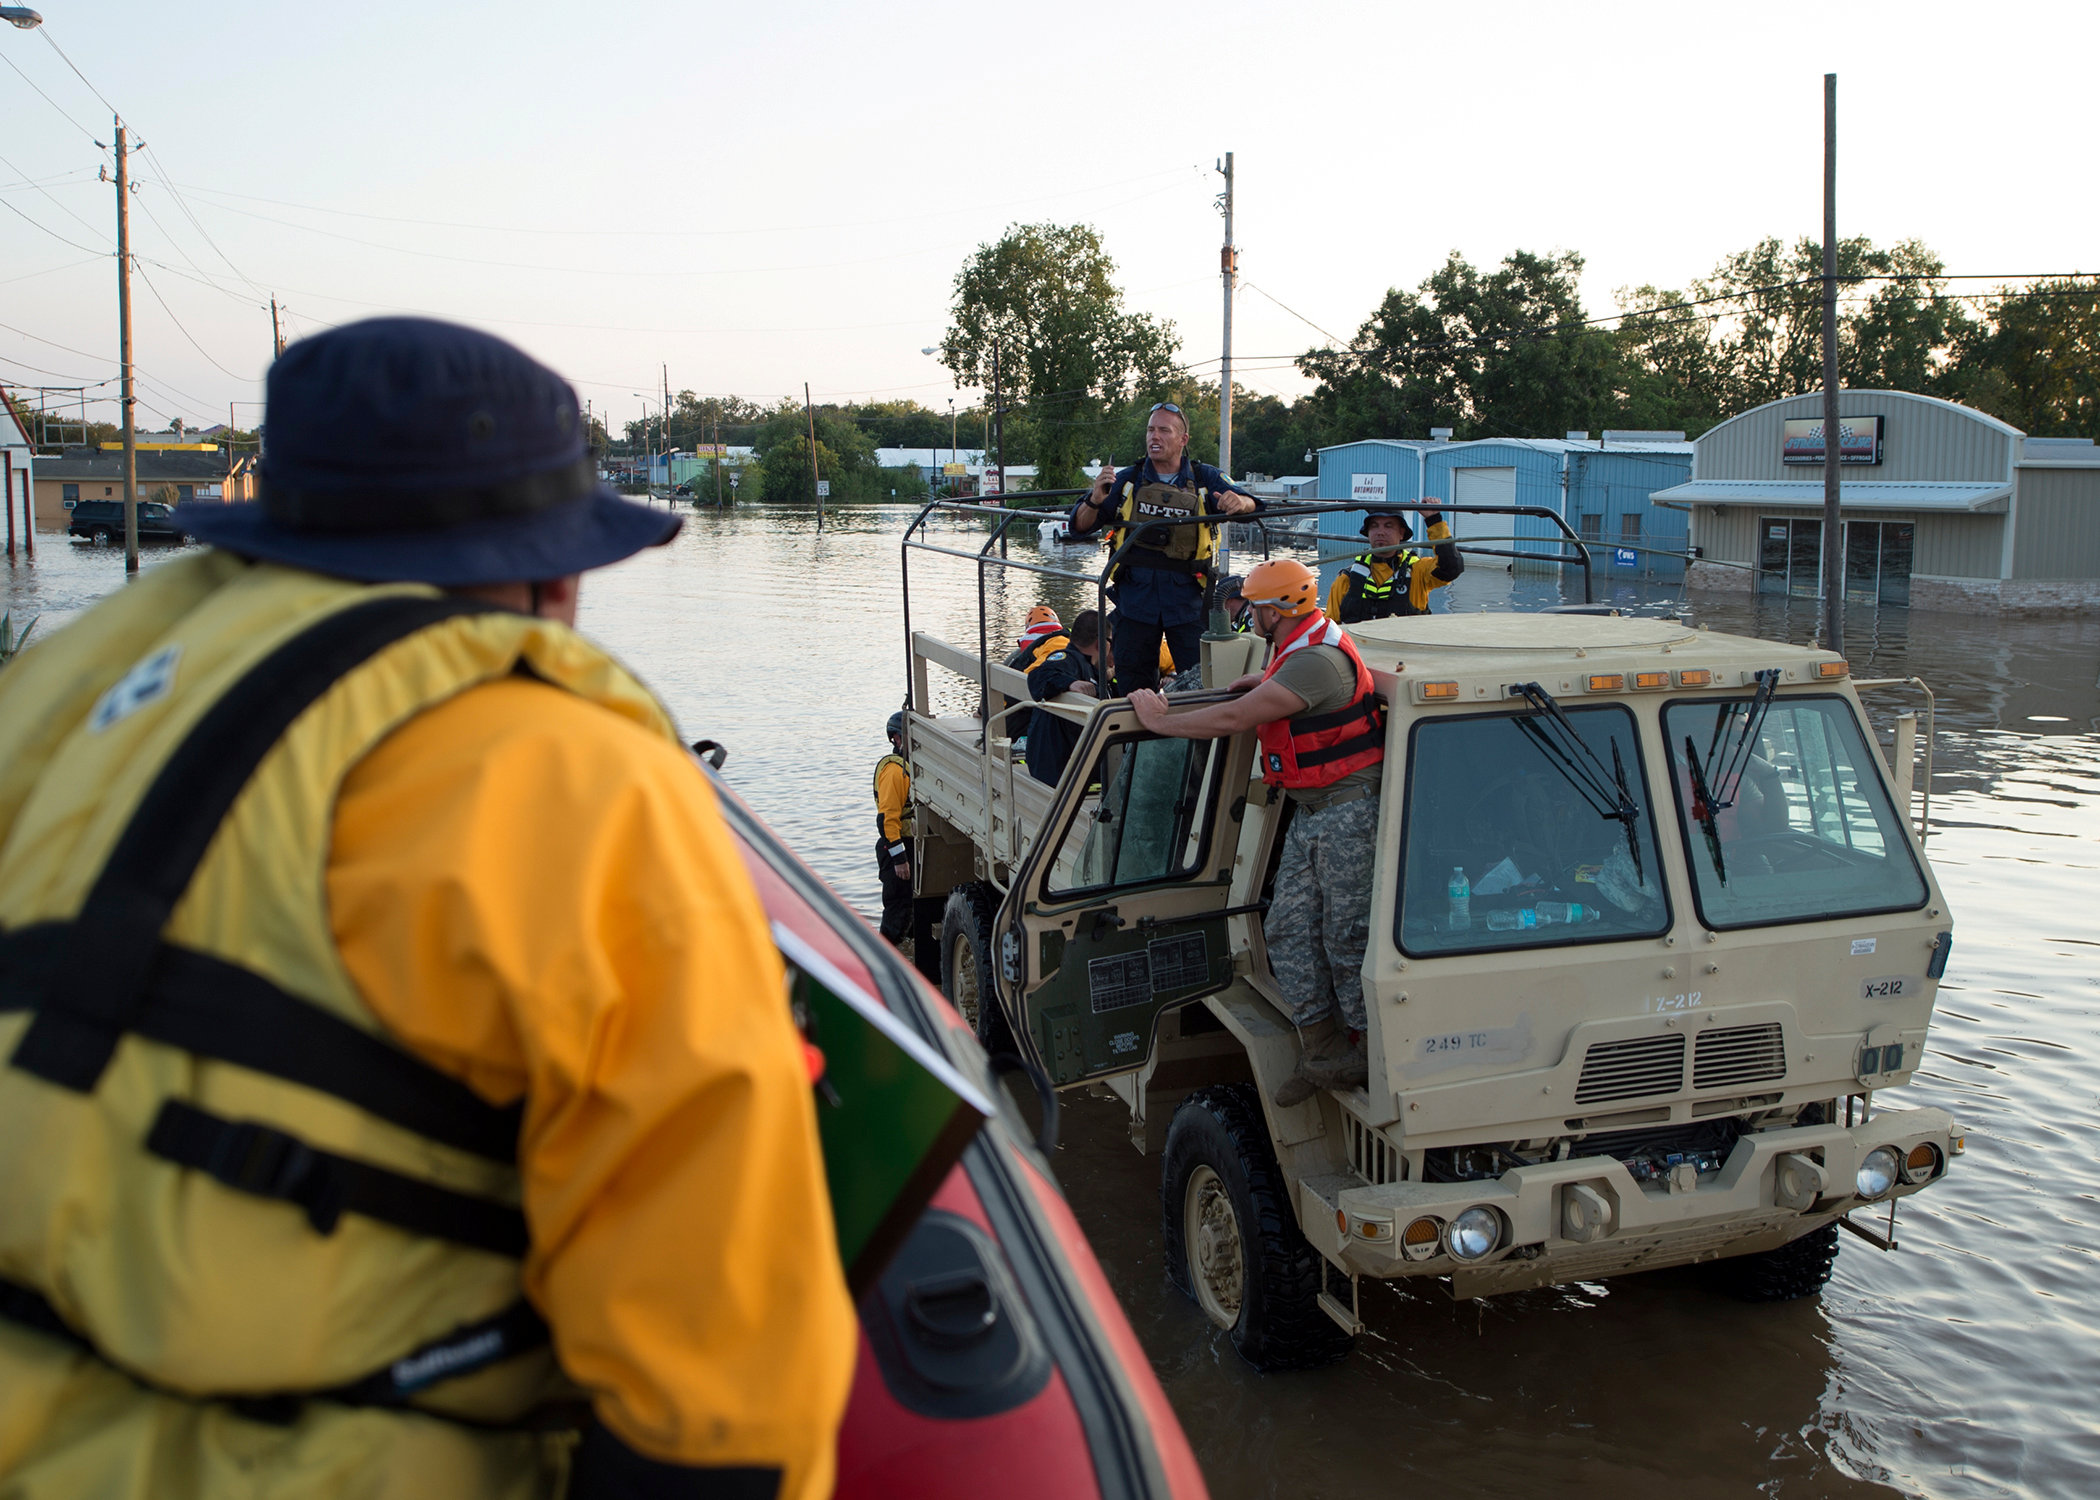 Members of Army National Guard conduct high water rescue operations in the aftermath of Tropical Storm Harvey in Wharton, Texas, U.S. in this August 31, 2017 handout photo. Senior Master Sgt. Robert Shelley/Air National Guard/Handout via REUTERS